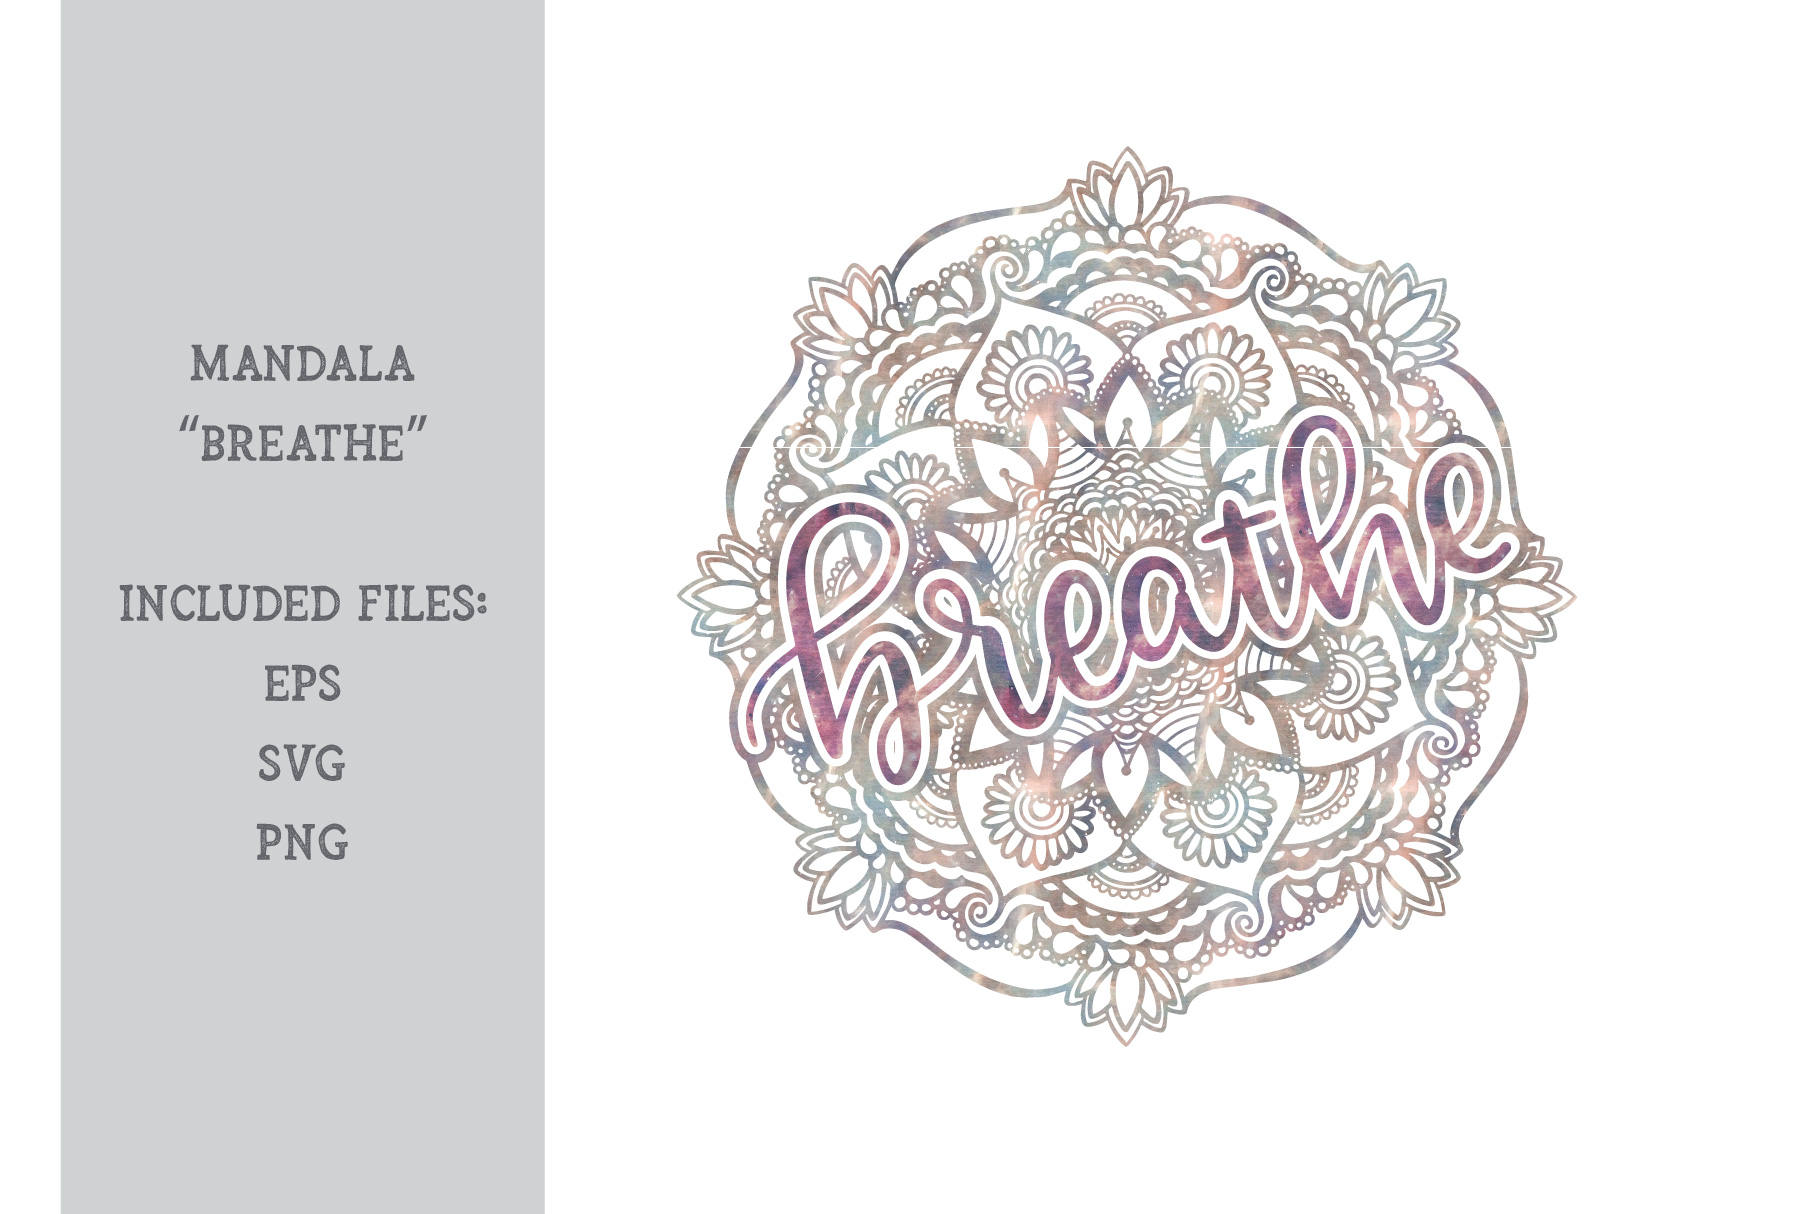 Breathe - Mandala example image 1